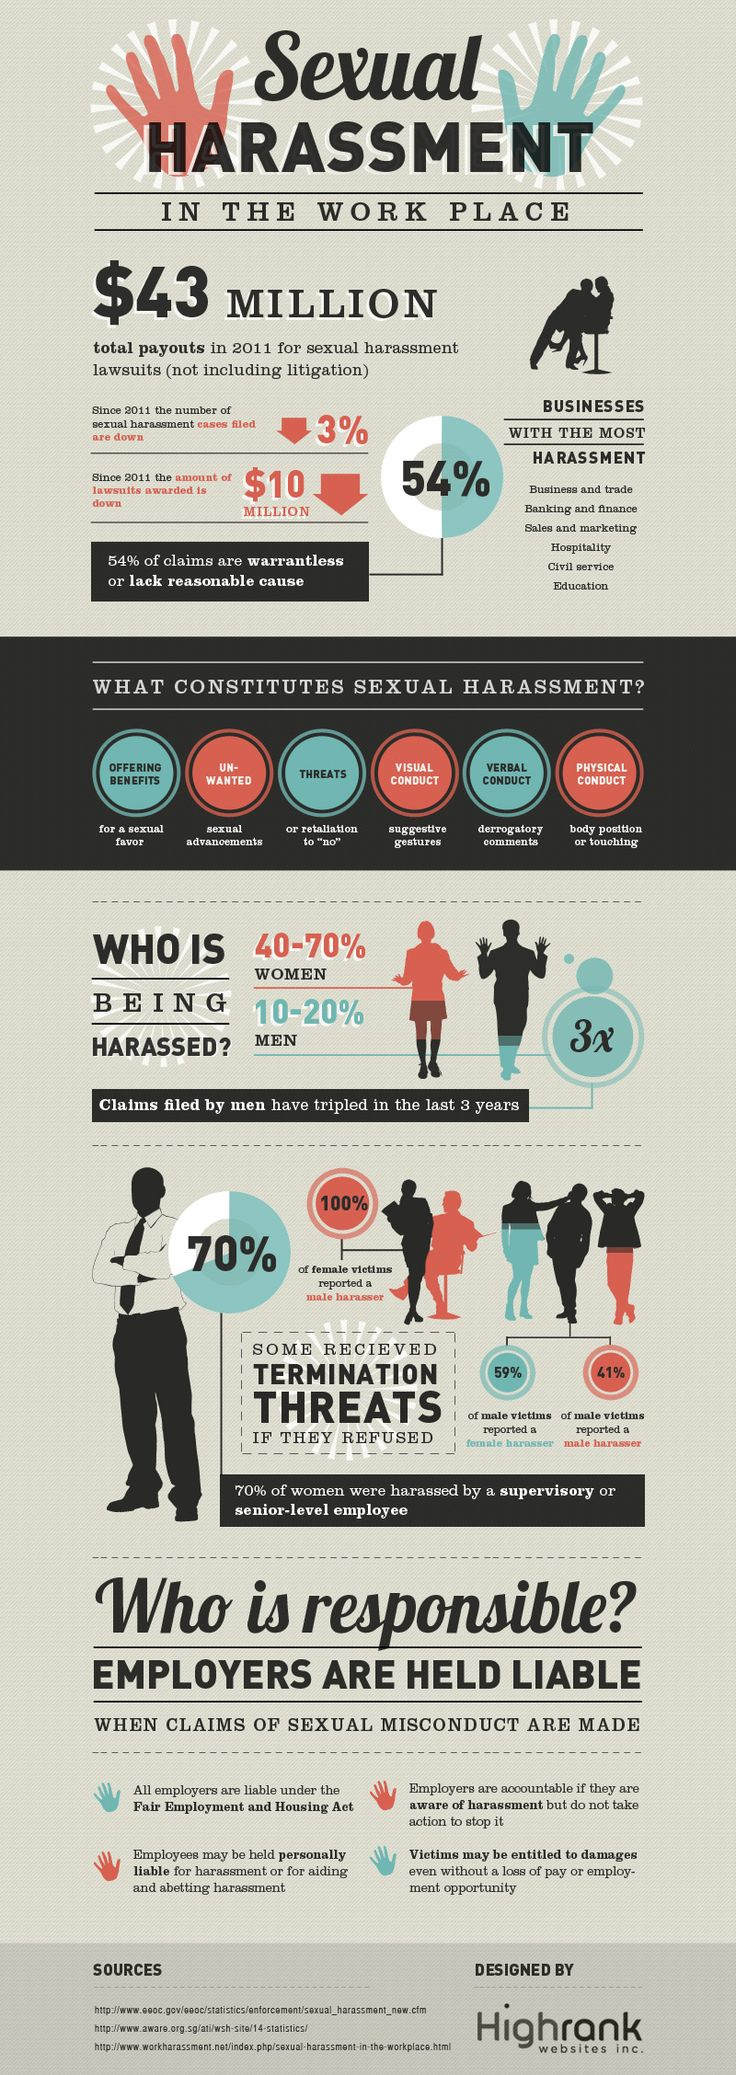 Ethical Implications of Sexual Harassment in the Workplace